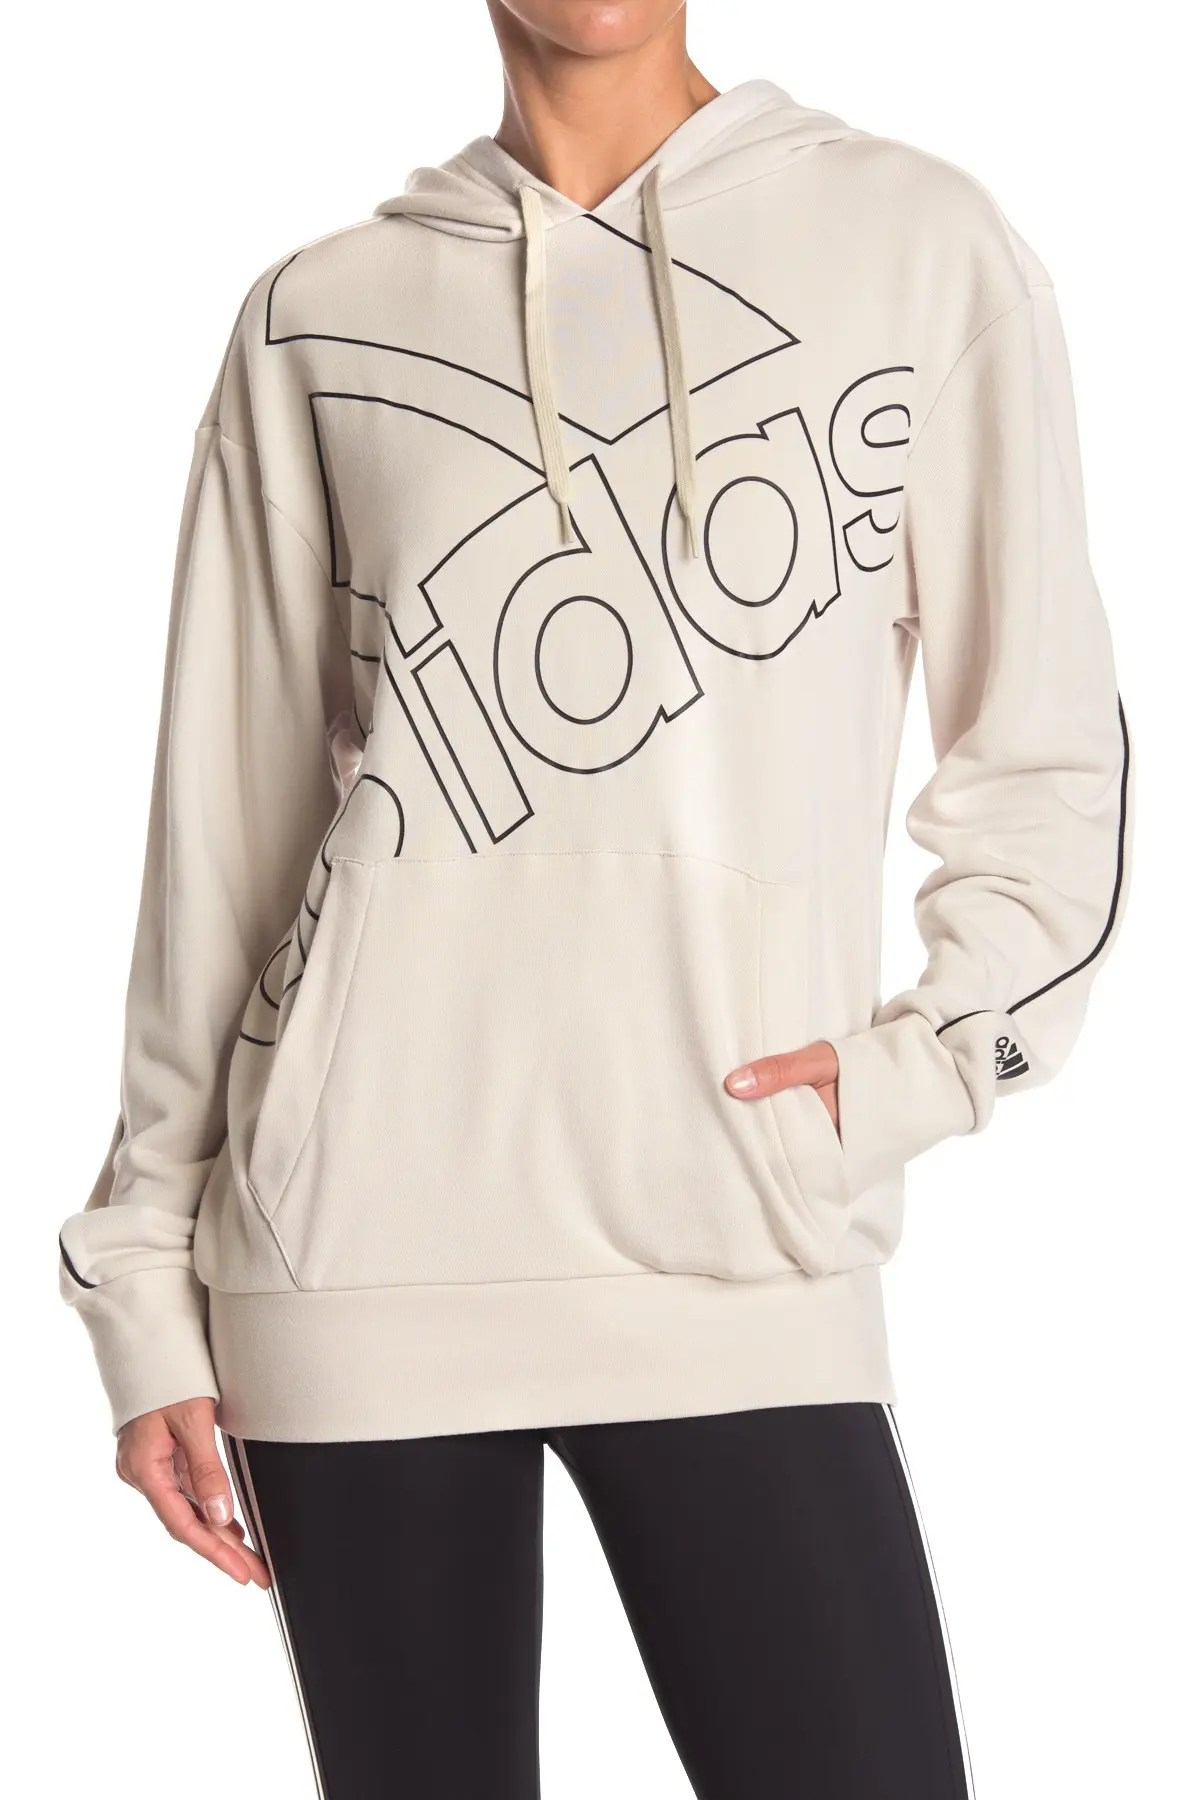 favorite q1 hooded pullover